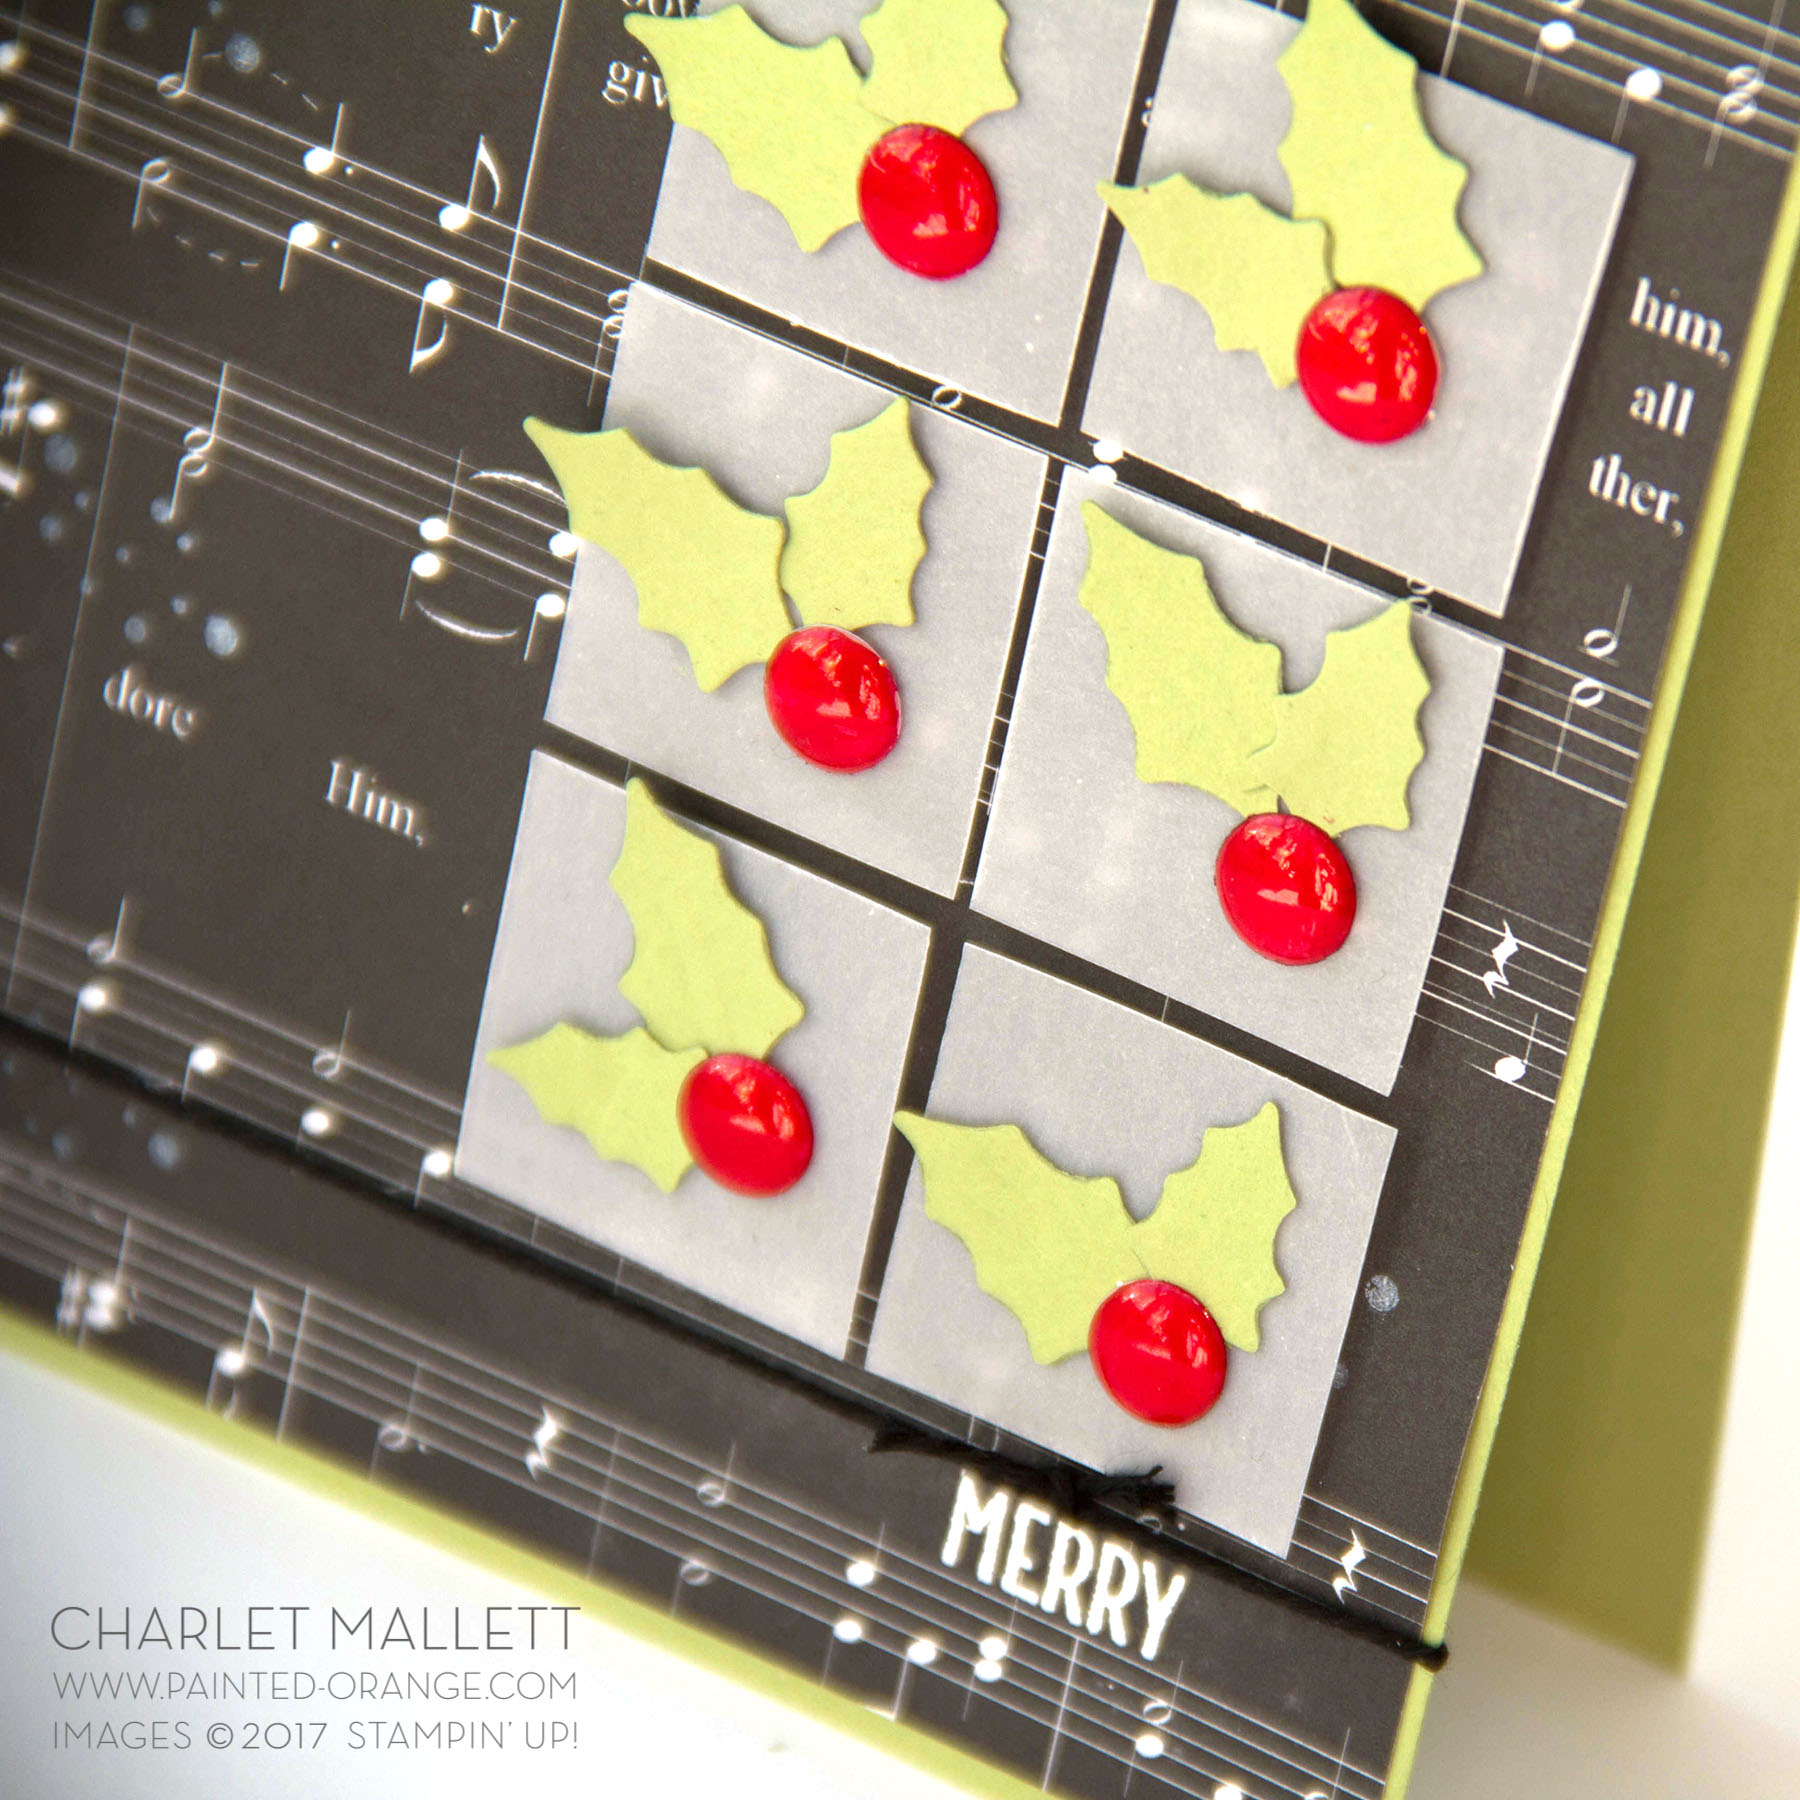 Super shiny red berries created with a Cherry Stampin' Blend marker and white Perfect Accents.